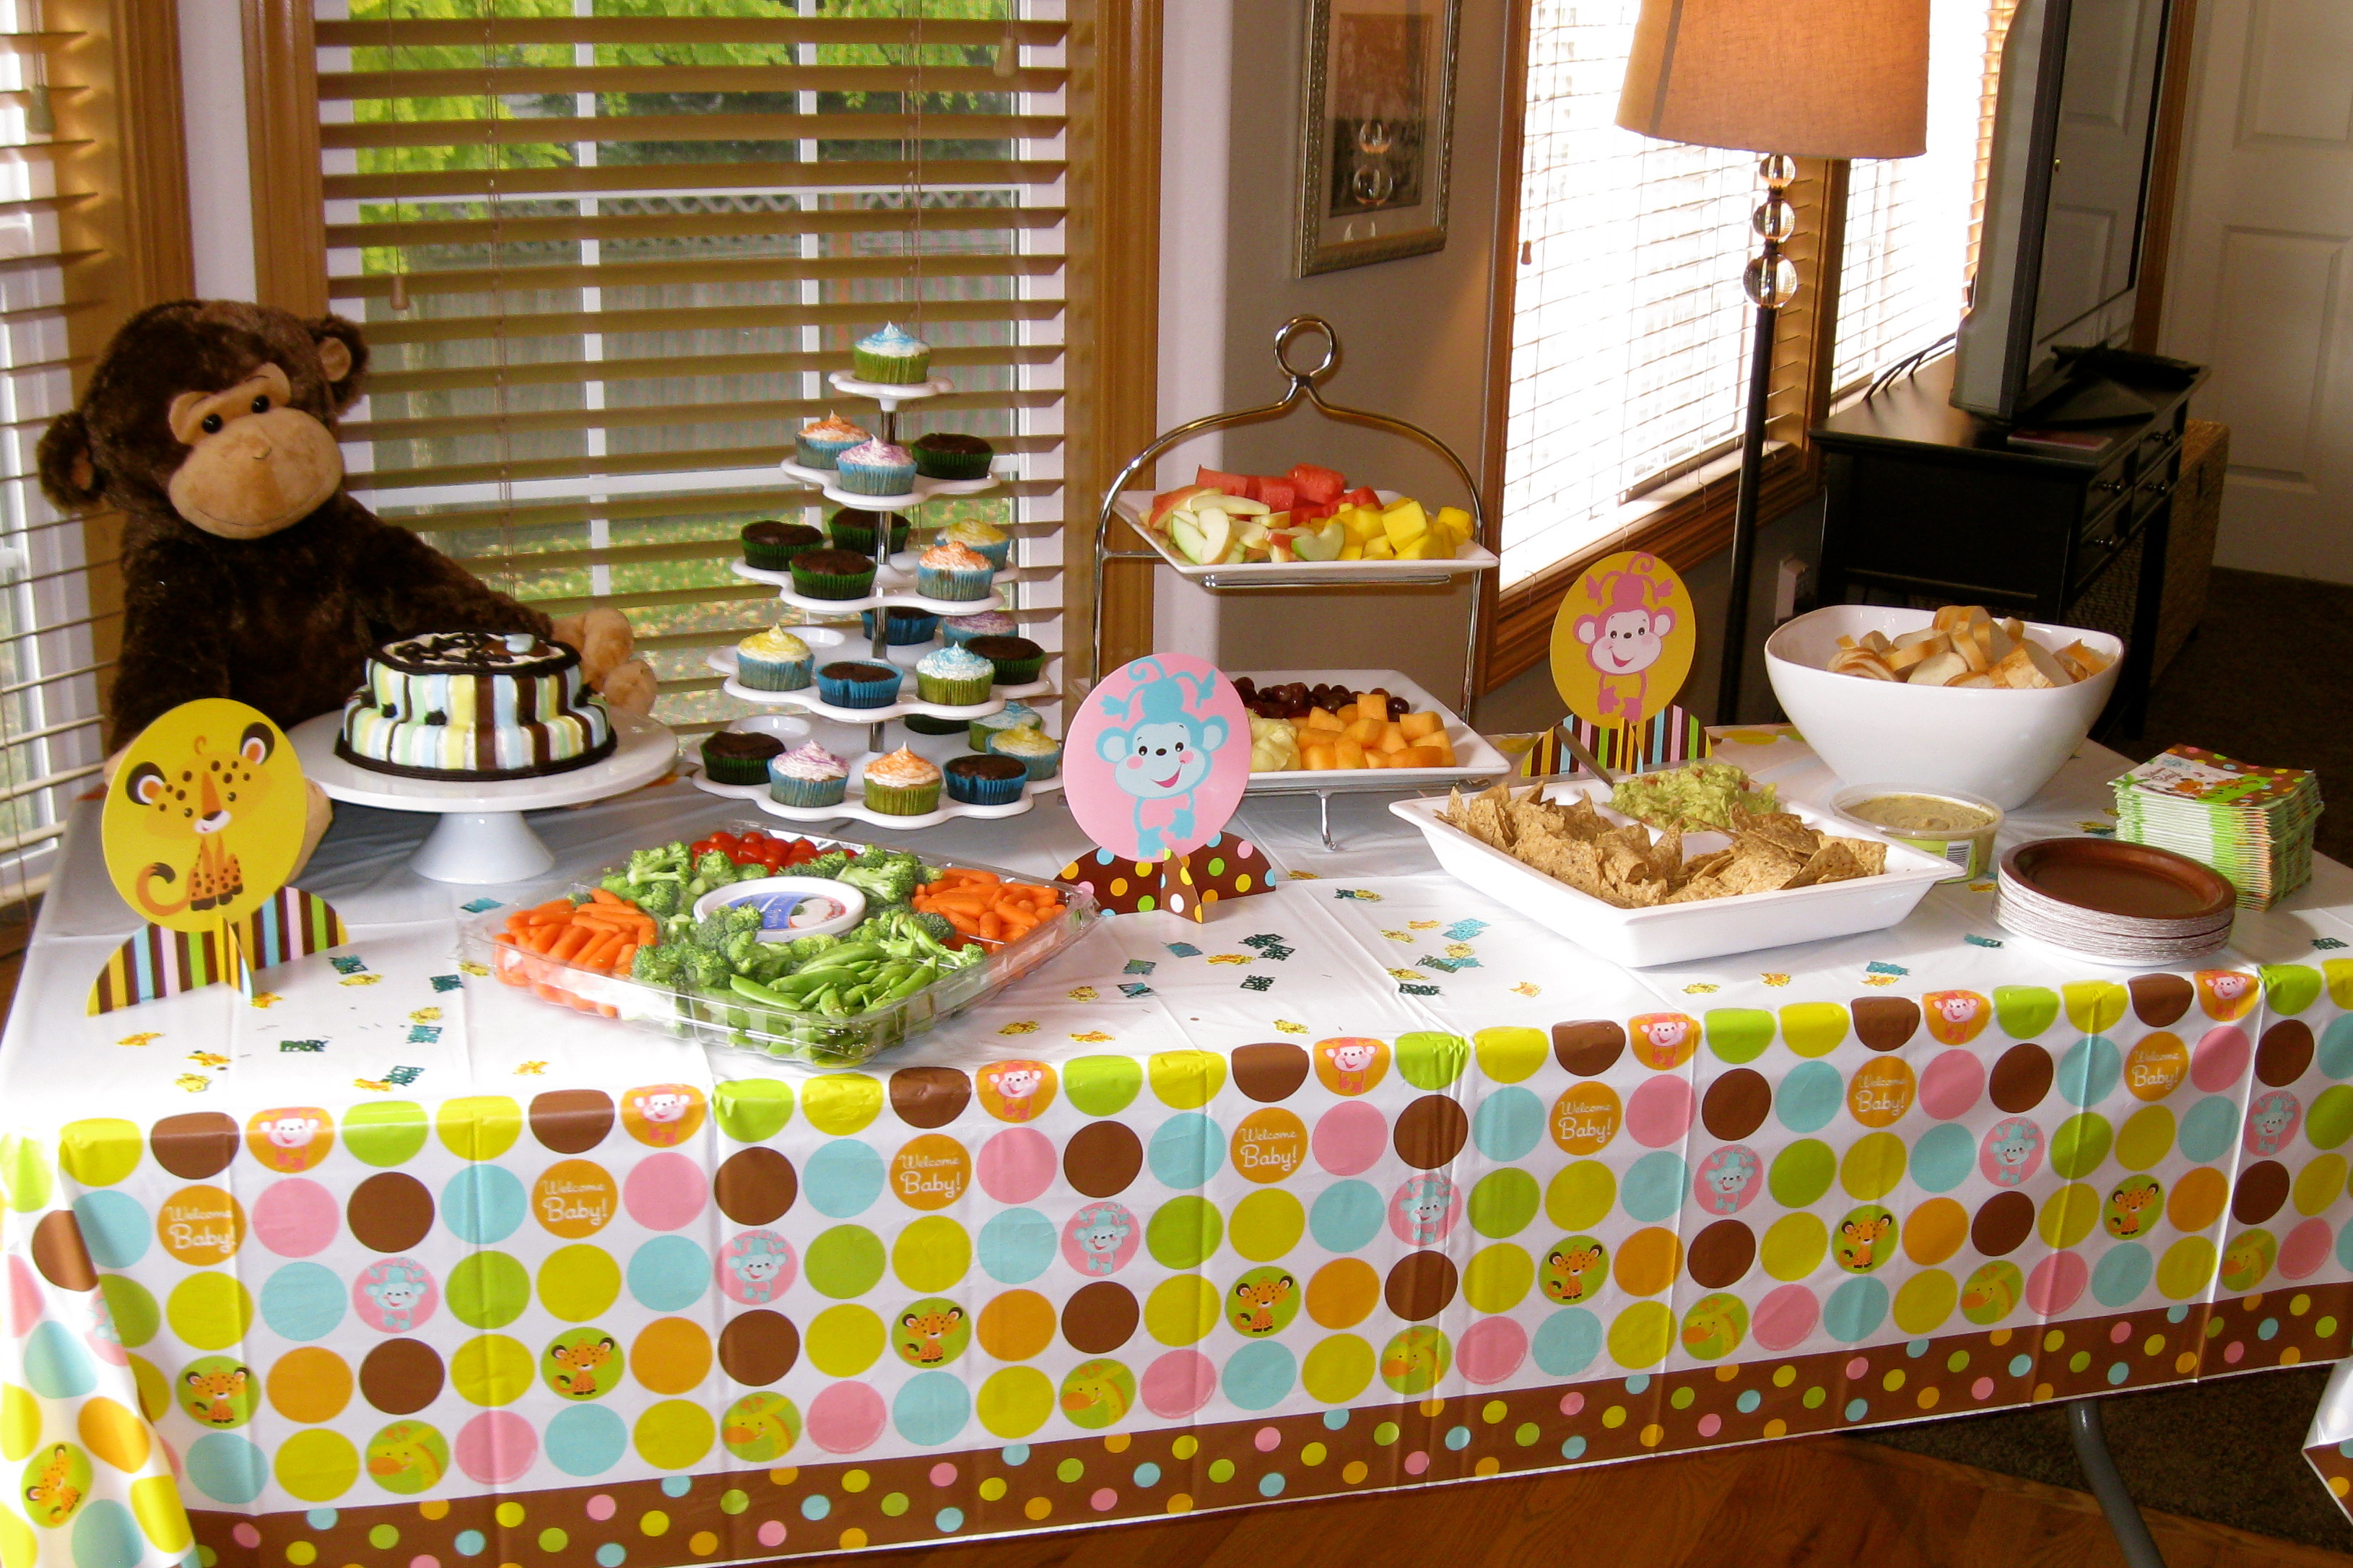 Best ideas about Baby Shower Food Table . Save or Pin Baby Shower Now.